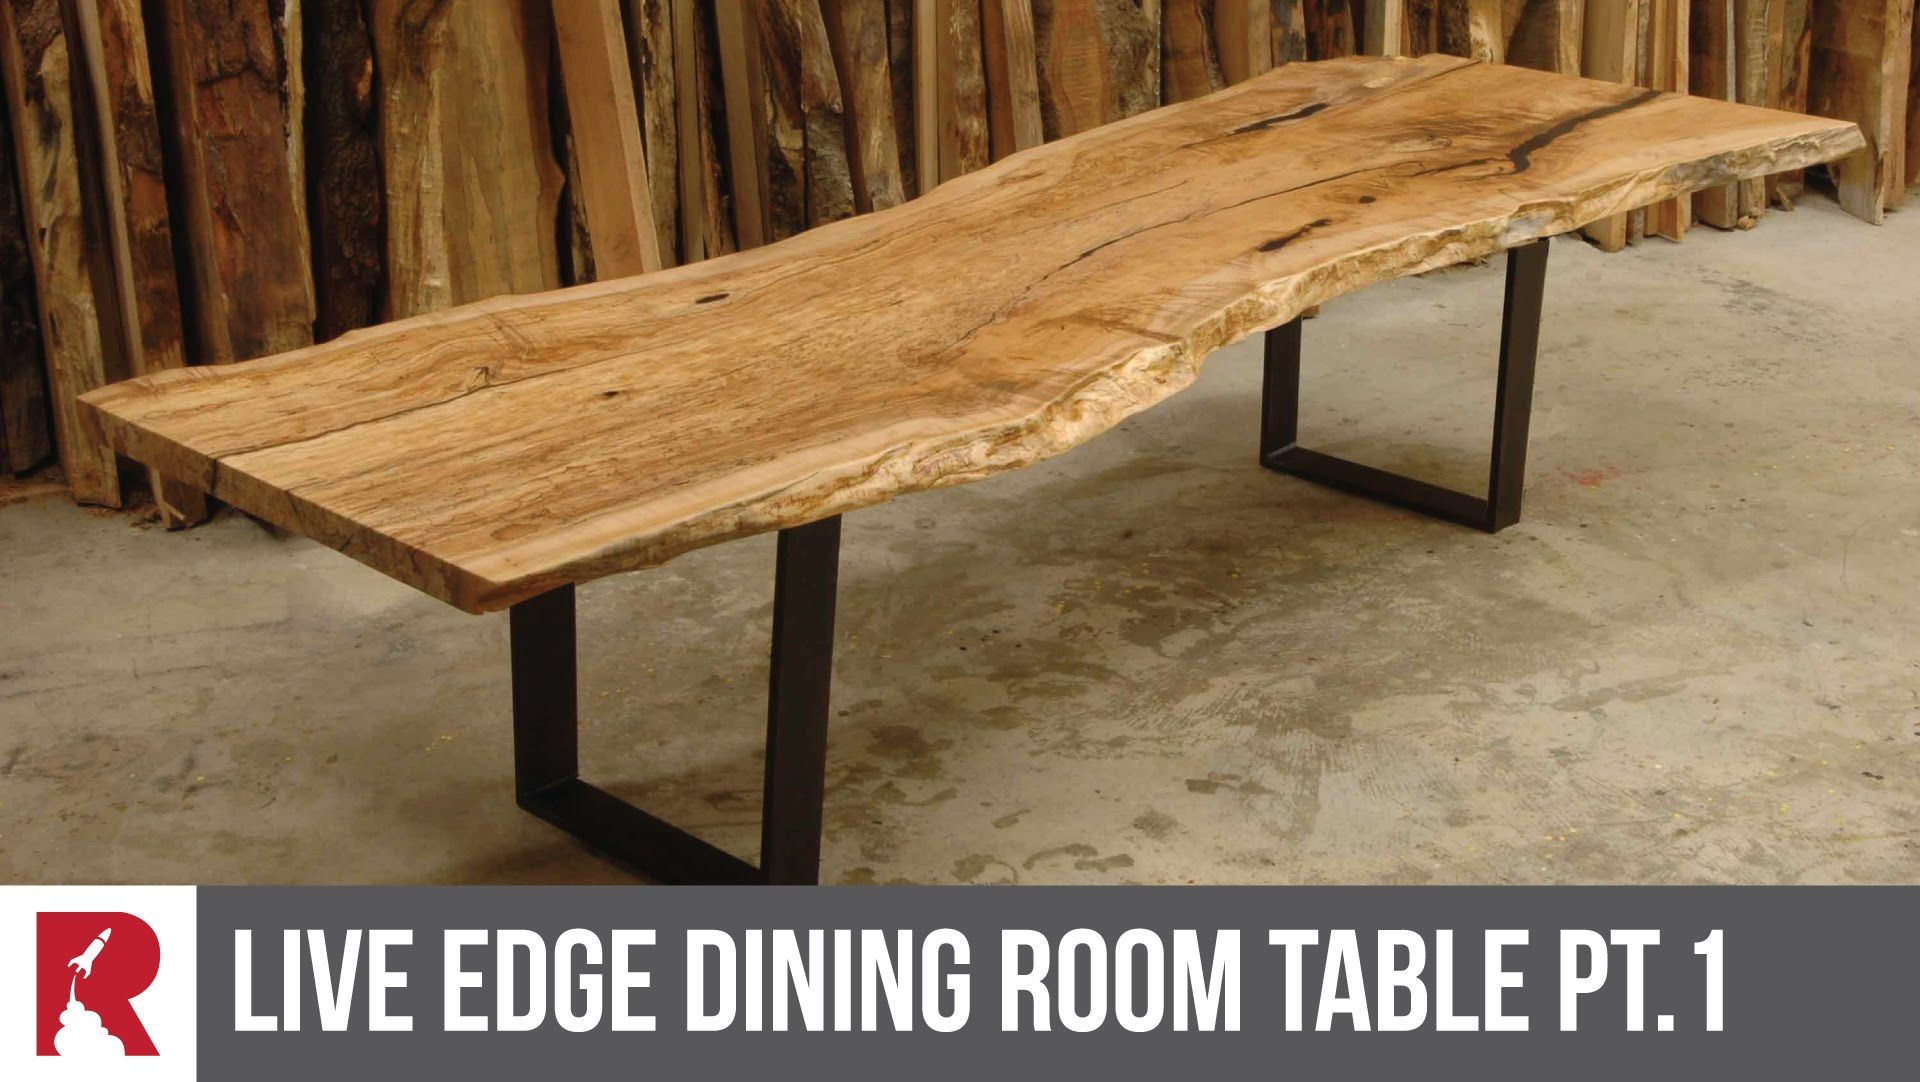 This Huge Sand Kiaat Live Edge Table Is So Much Fun To Work On